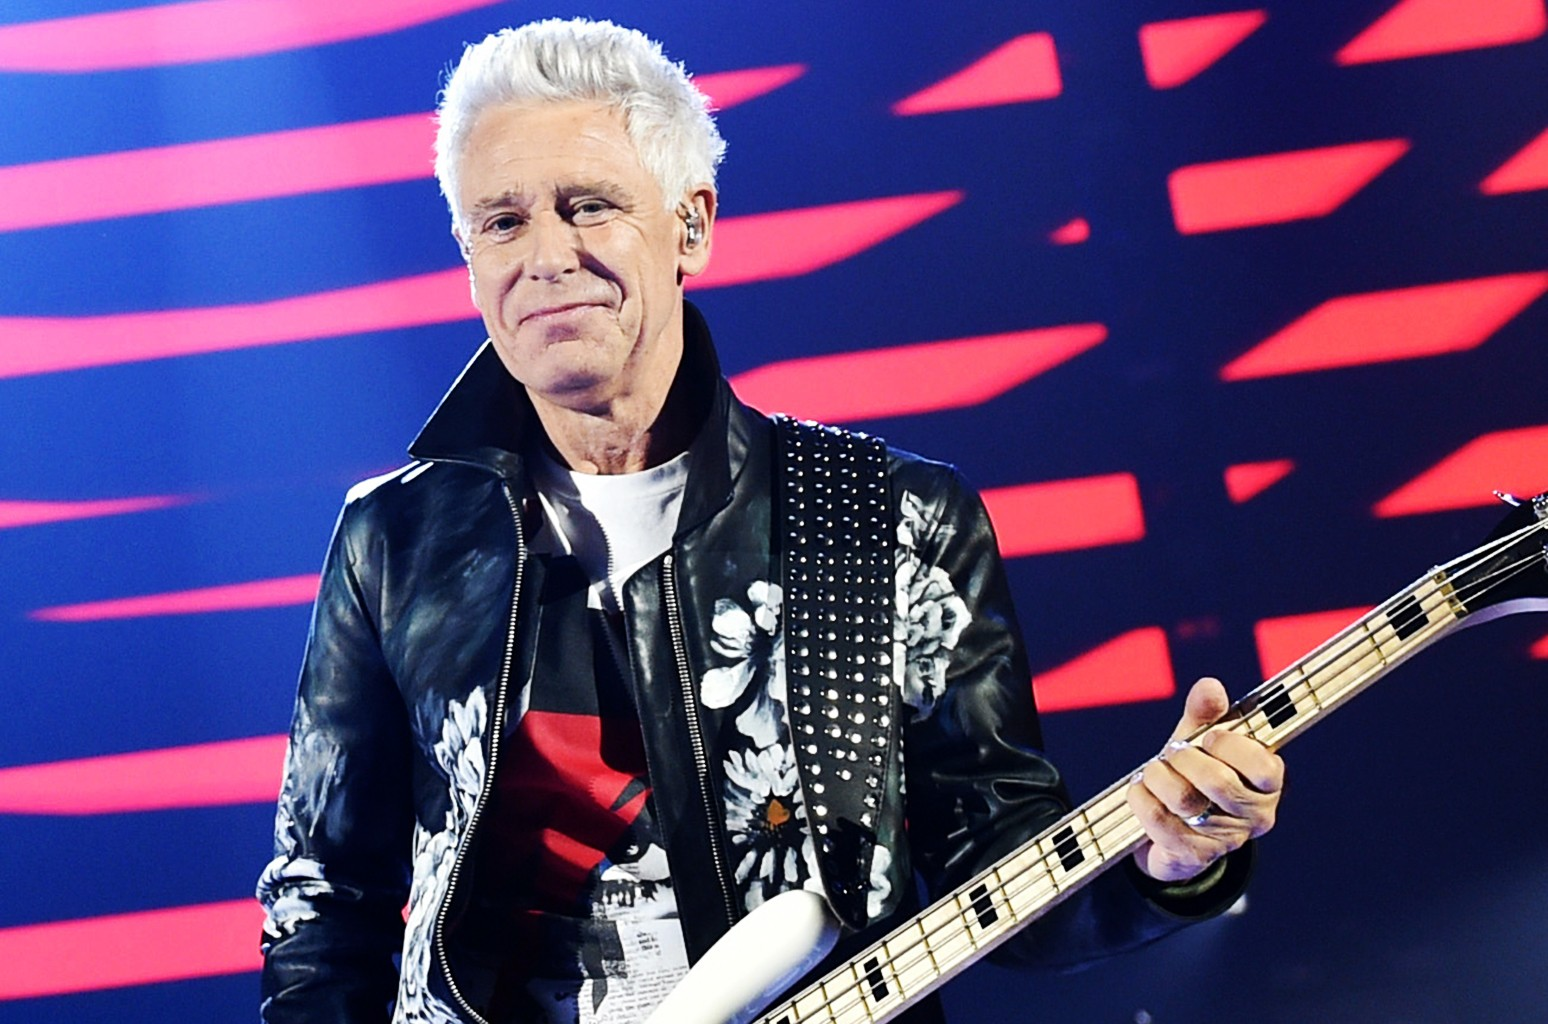 Bassist Adam Clayton of U2 performs onstage at the 2016 iHeartRadio Music Festival at T-Mobile Arena on Sept. 23, 2016 in Las Vegas.